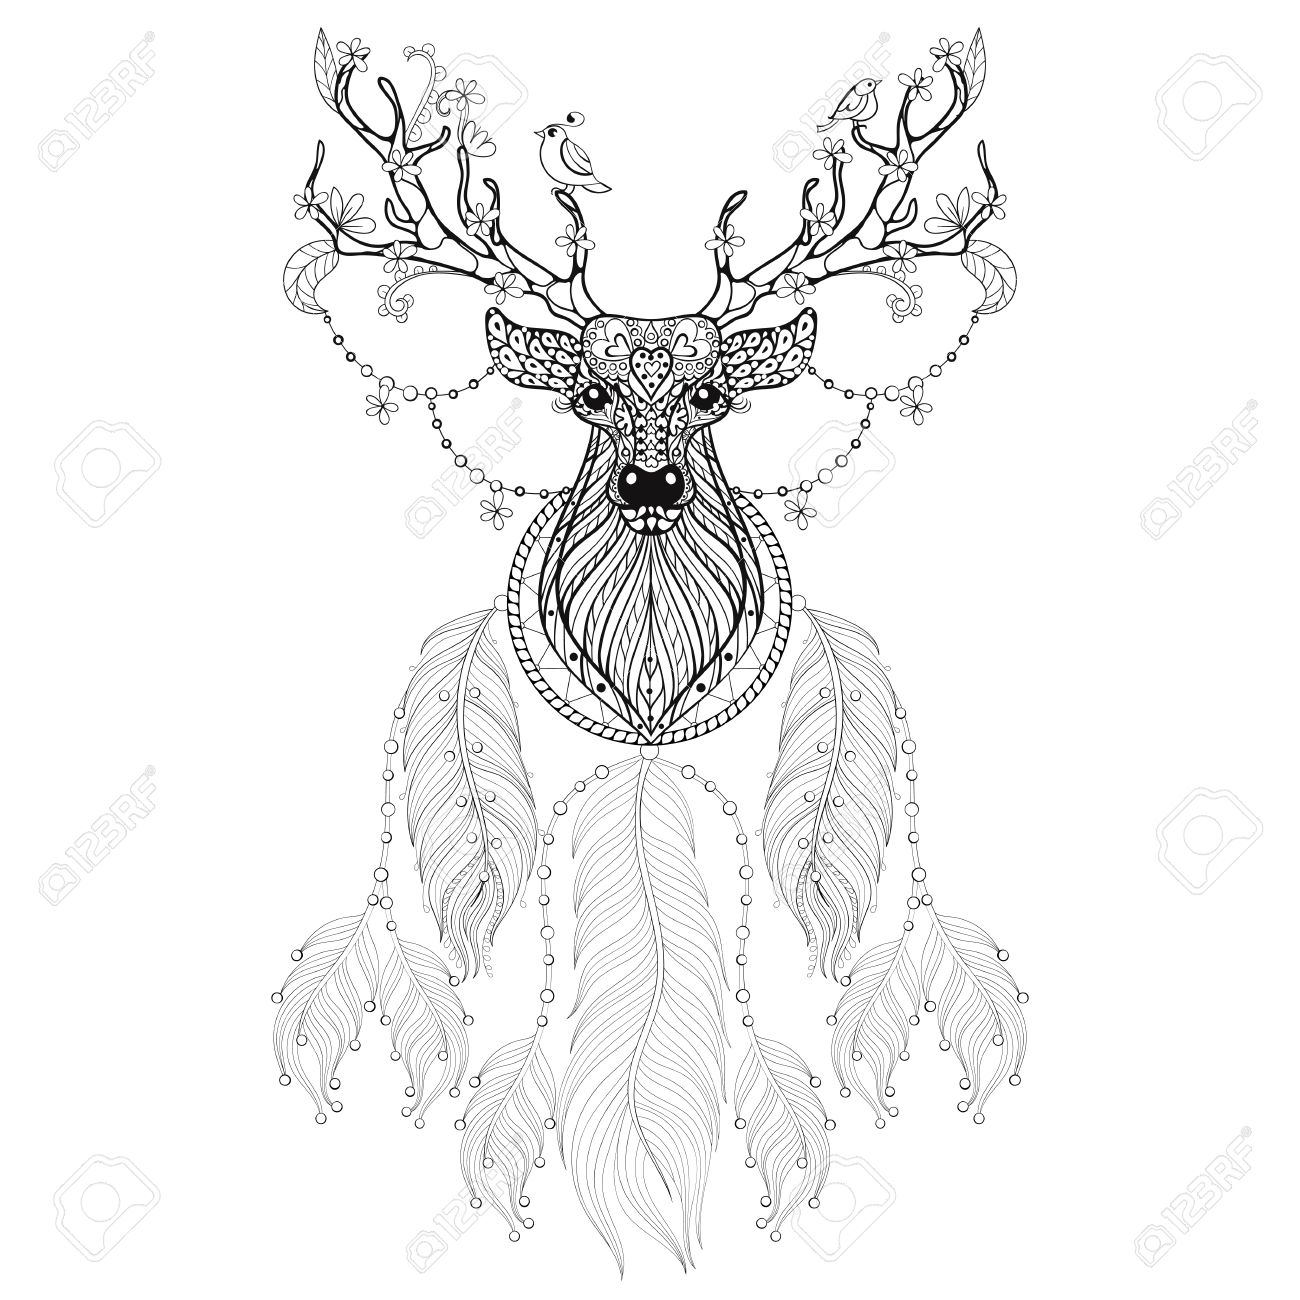 1300x1300 Hand Drawn Dreamcatcher With Tribal Hprned Deer With Flowers